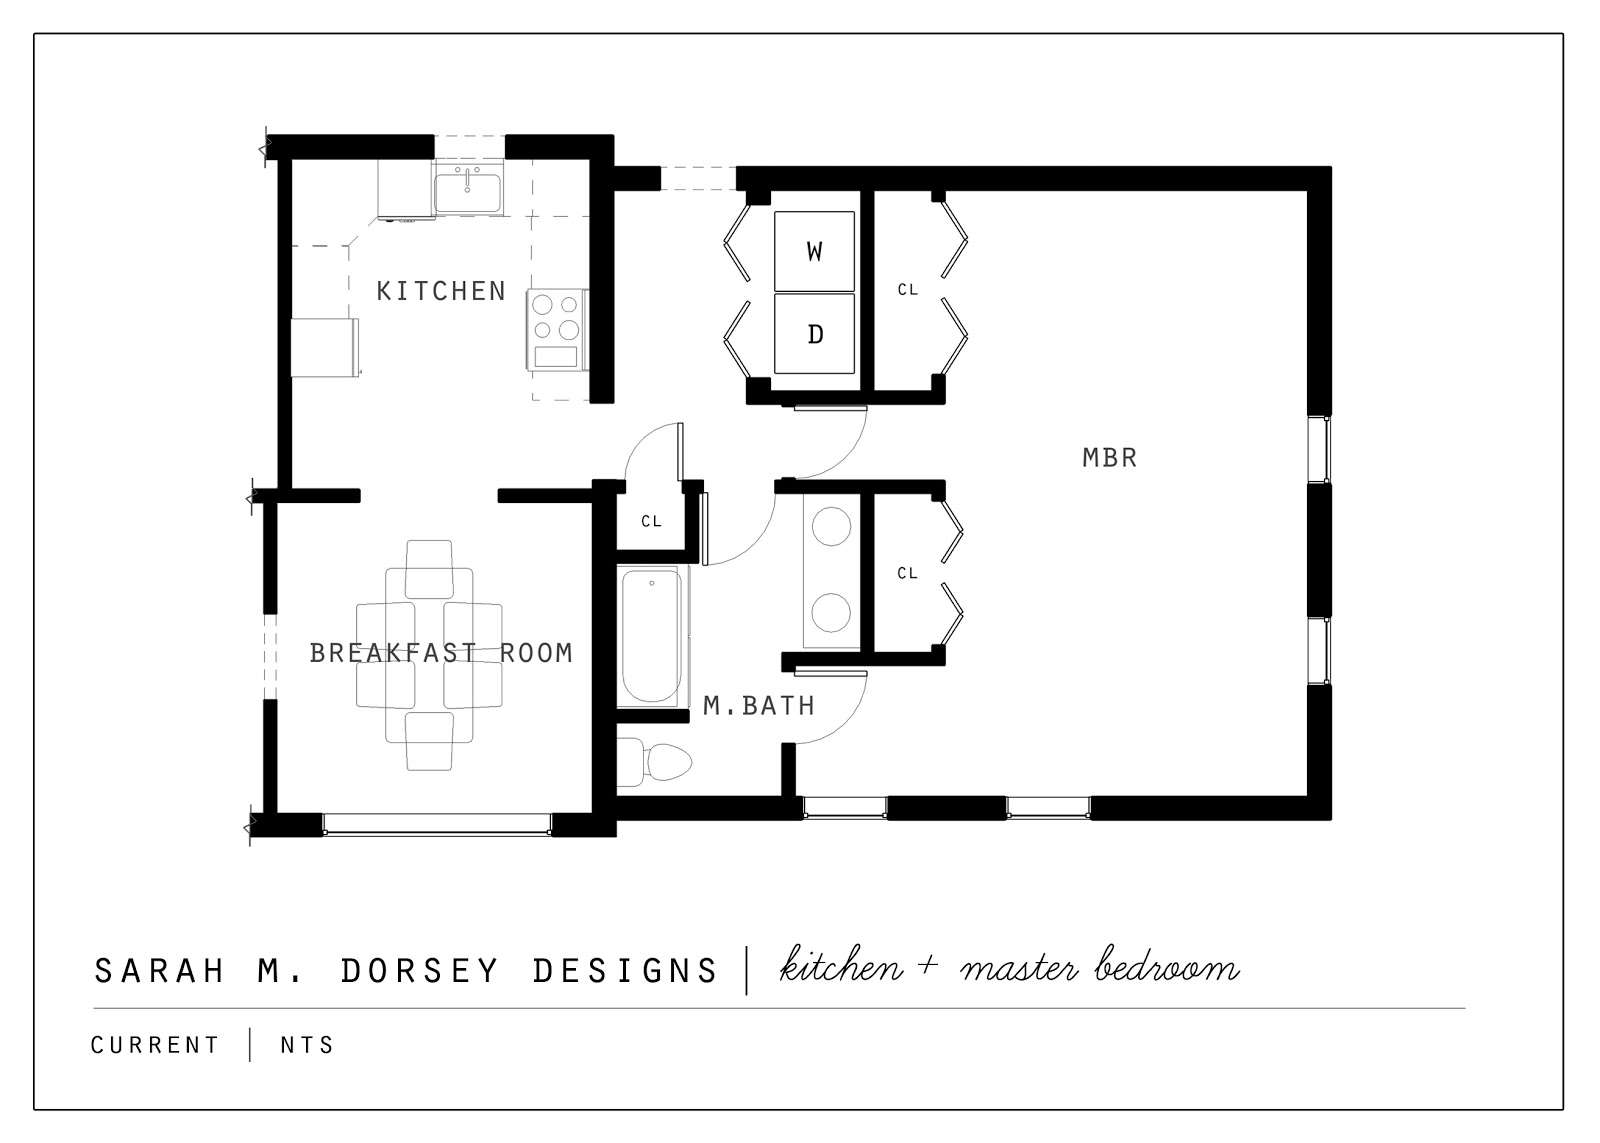 Sarah Dorsey Designs Proposed Kitchen Master Suite